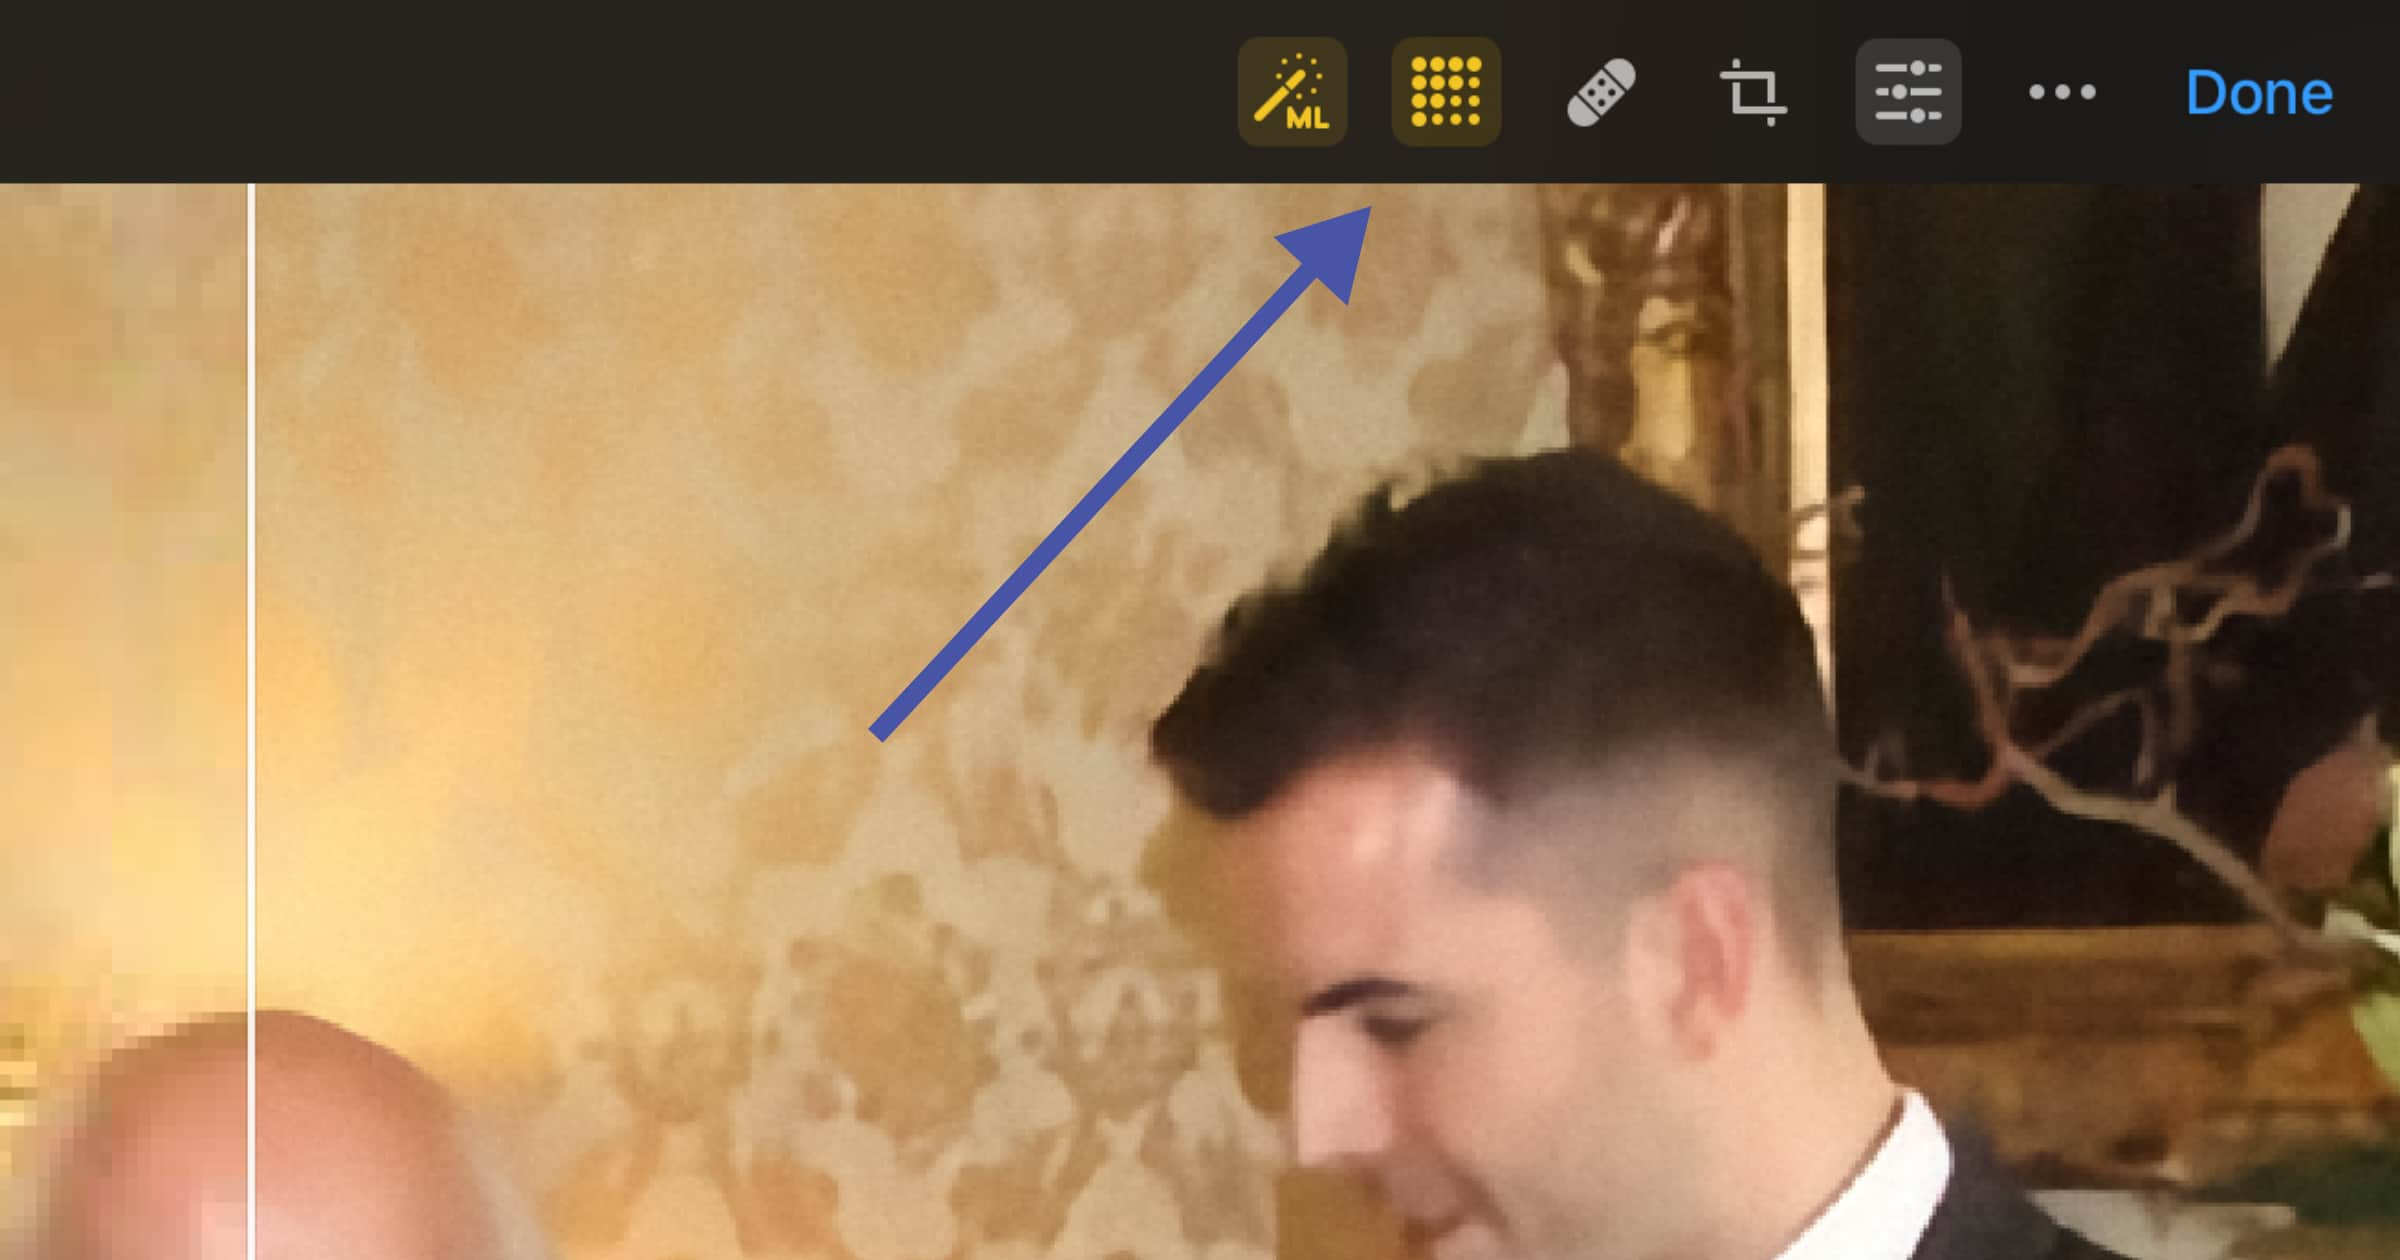 An arrow pointing to the Pixelmator ML feature to improve photo quality